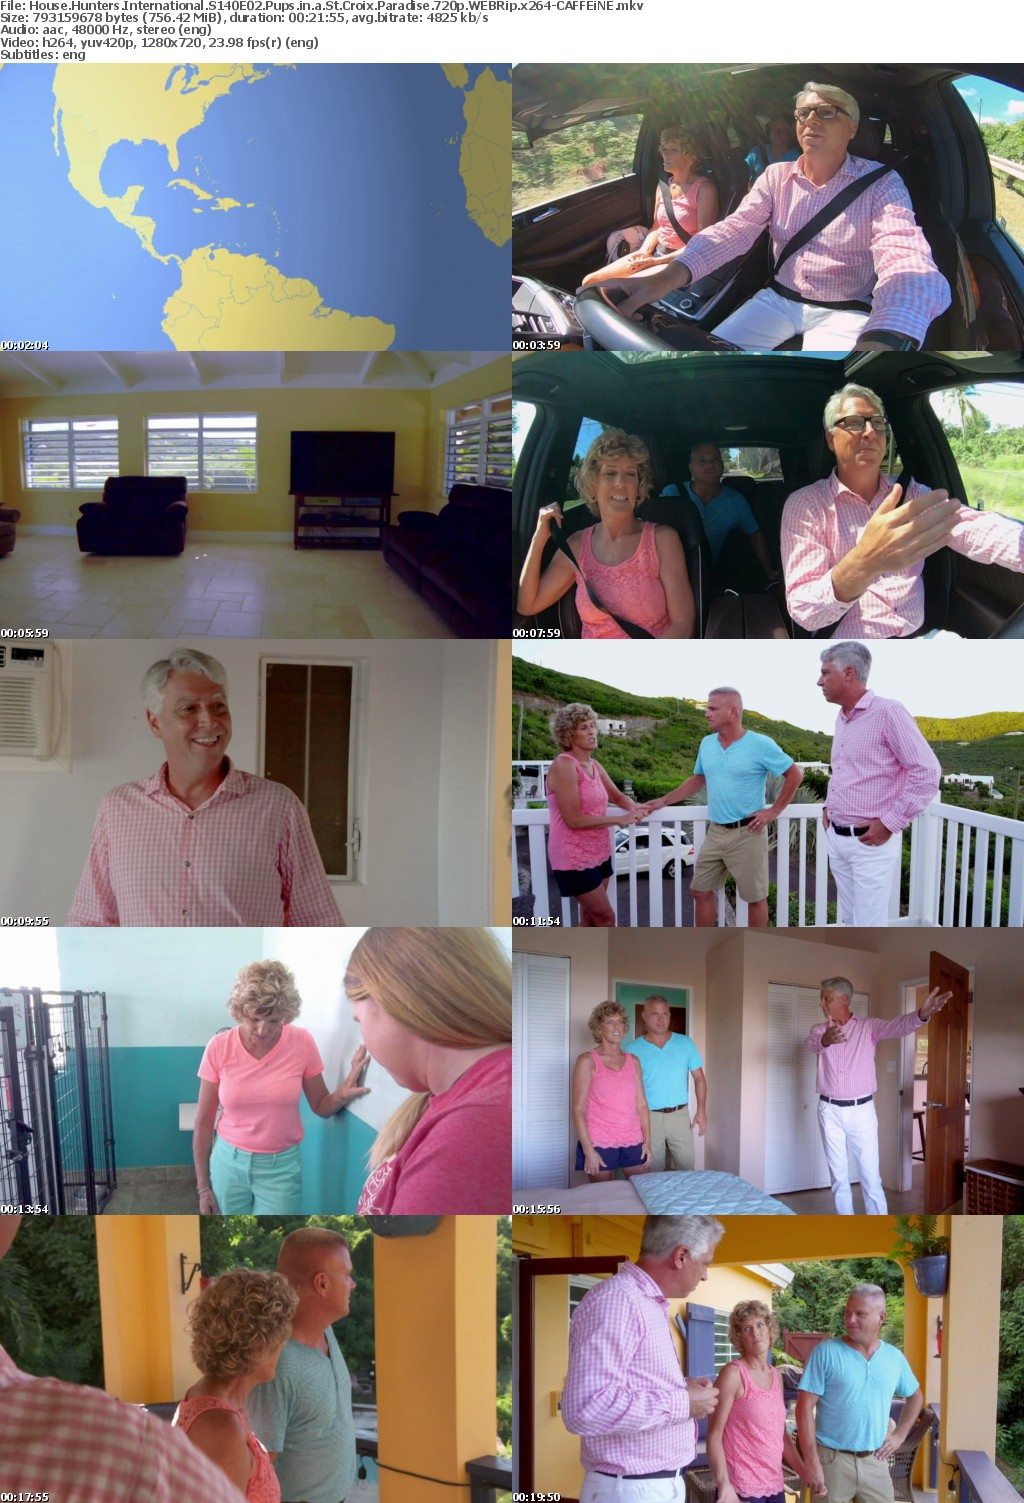 House Hunters International S140E02 Pups in a St Croix Paradise 720p WEBRip x264-CAFFEiNE